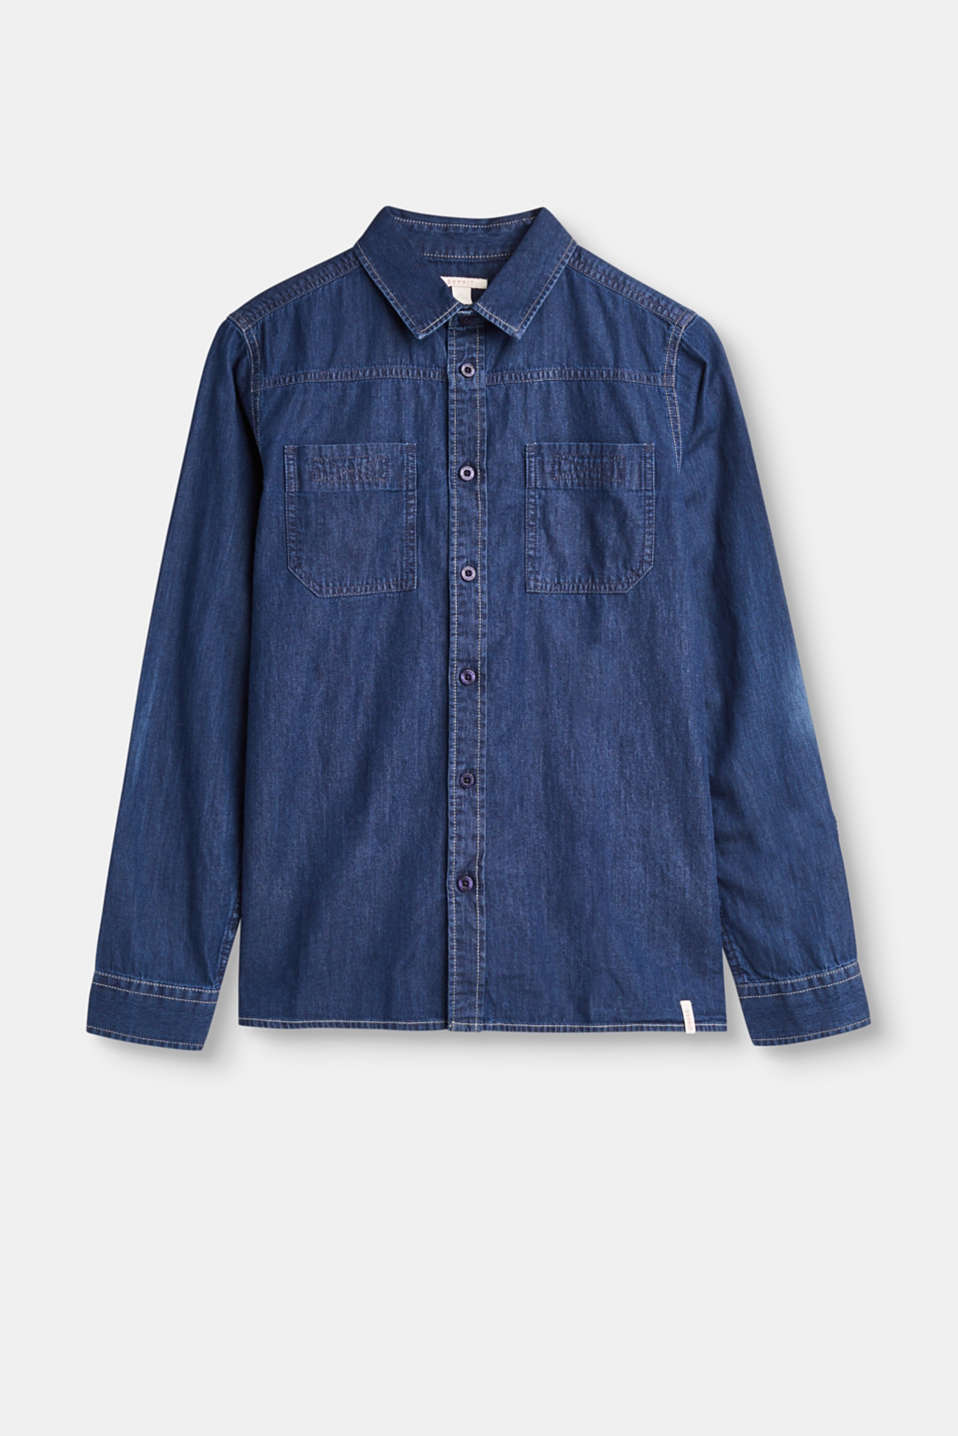 Casual classic! You are guaranteed to look cool in this dark blue denim shirt made of 100% cotton.